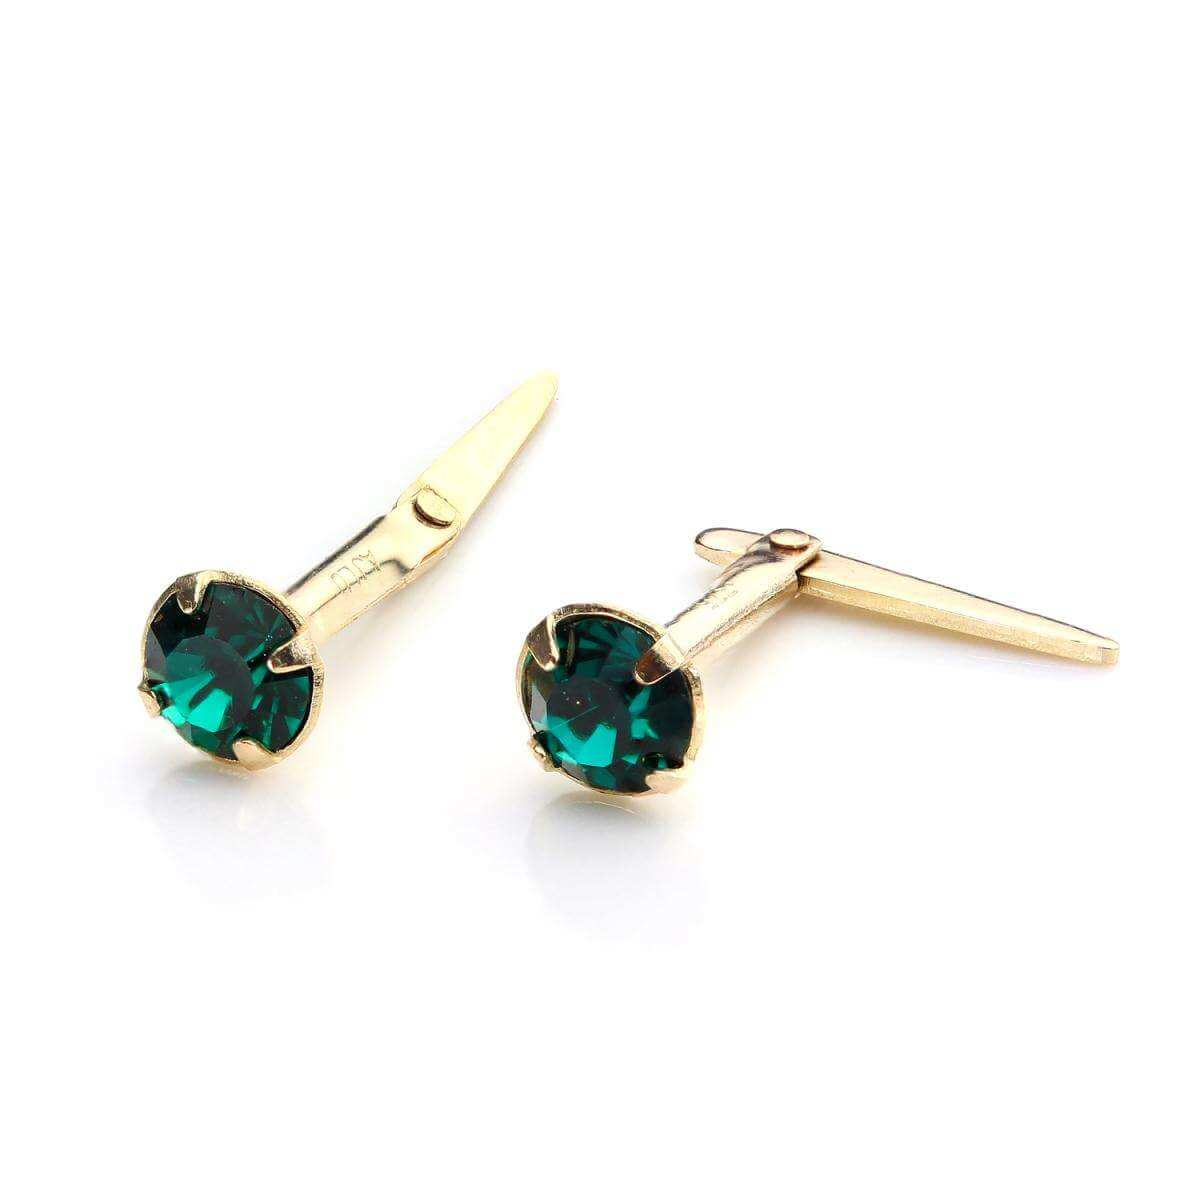 9ct Gold Andralok Stud Earrings with 3mm Emerald Crystal